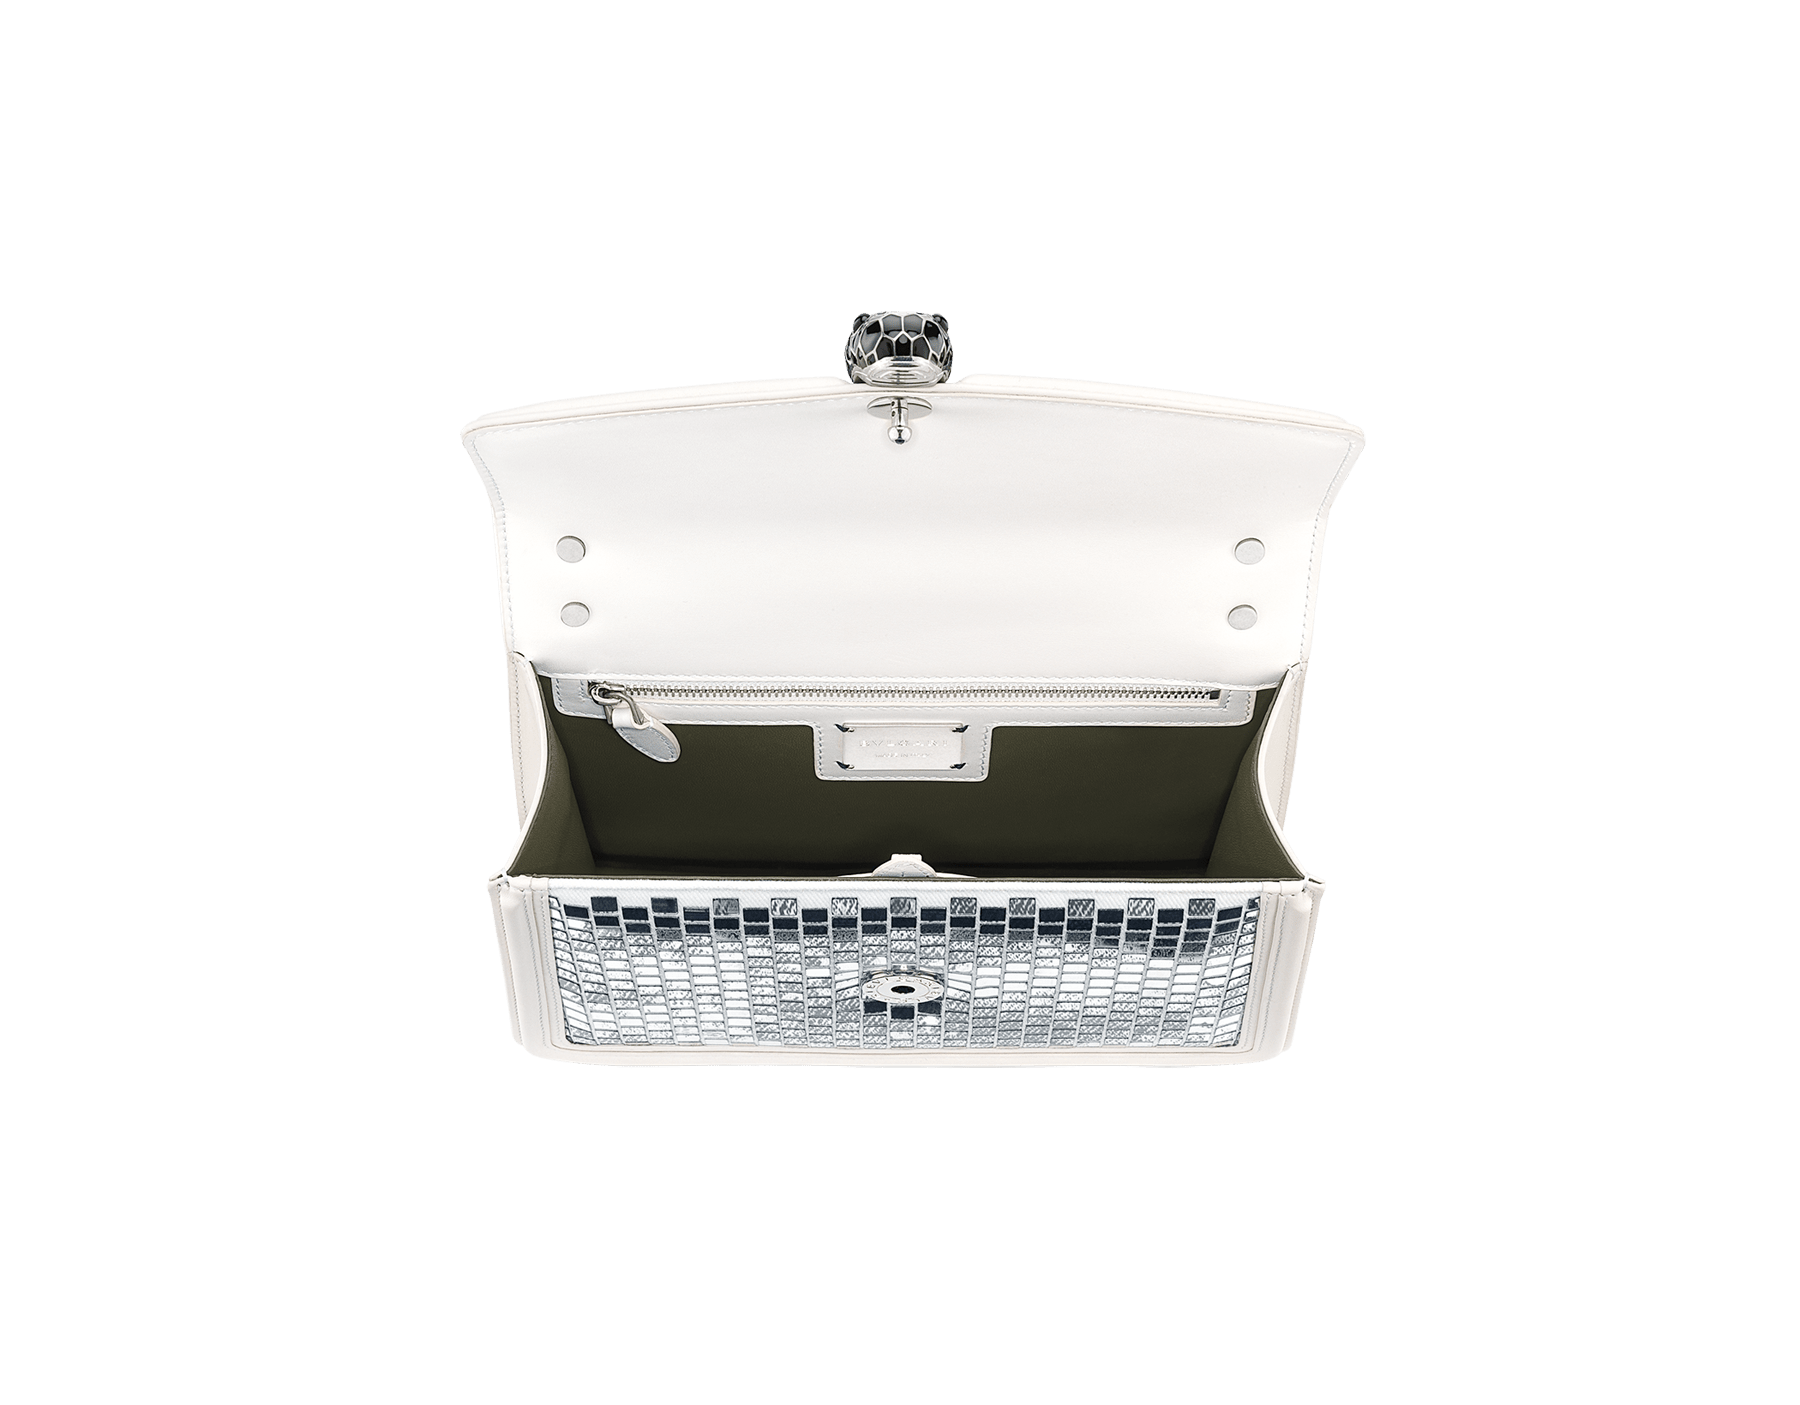 """""""Serpenti Diamond Blast"""" shoulder bag in white agate """"Mosaic Canvas"""" calf leather. Iconic snake head closure in palladium plated brass enriched with matte black and shiny white enamel and black onyx eyes. 289881 image 3"""